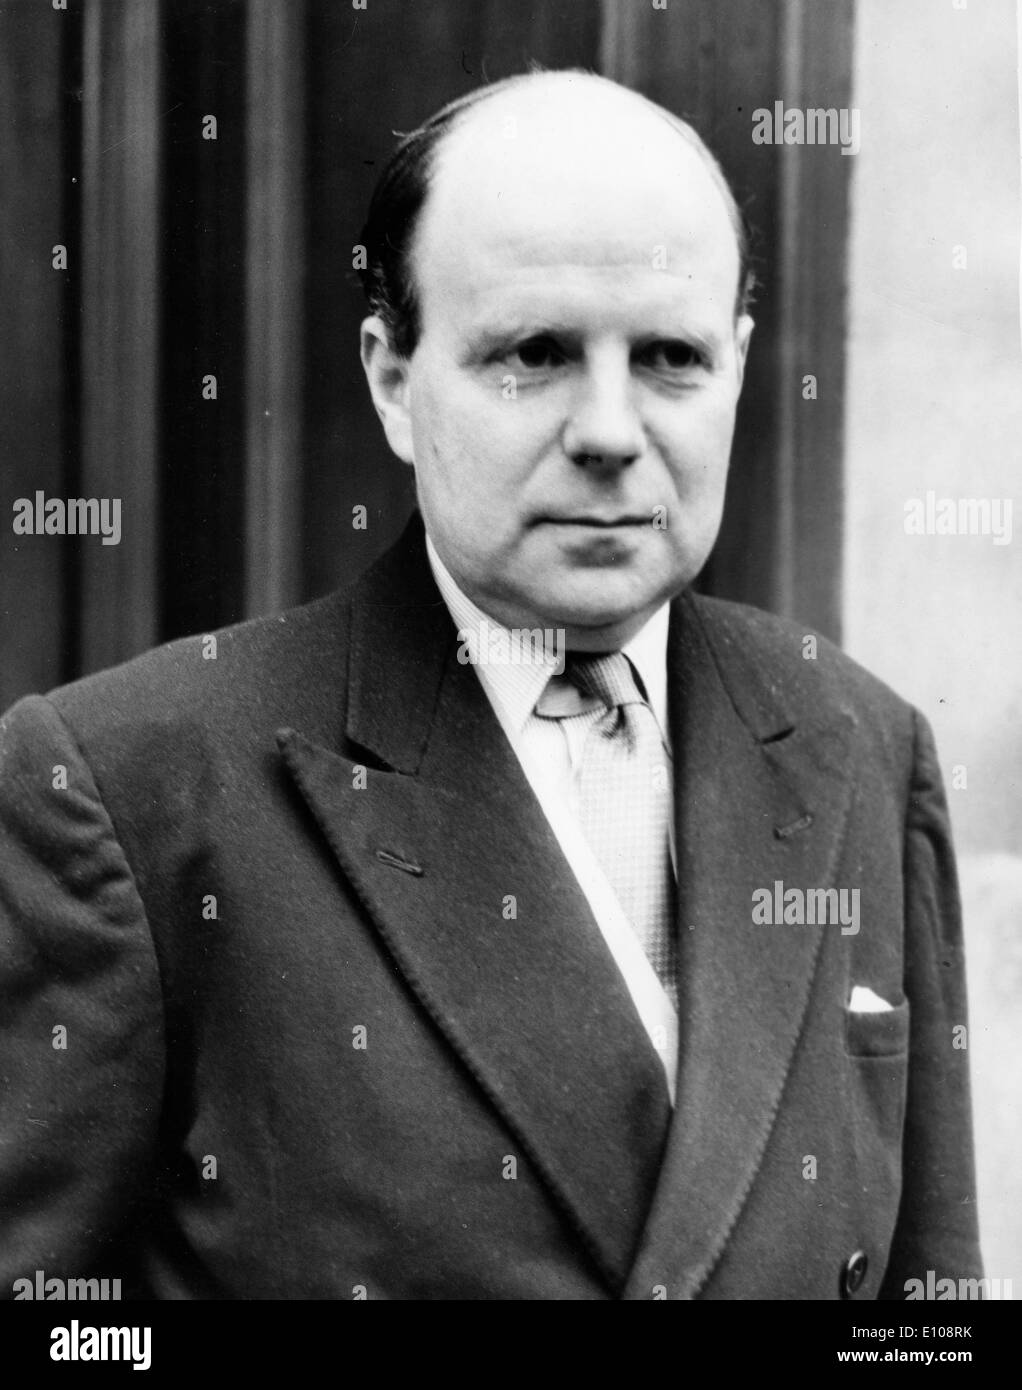 Minister of Labour Iain Macleod arrives at meeting - Stock Image